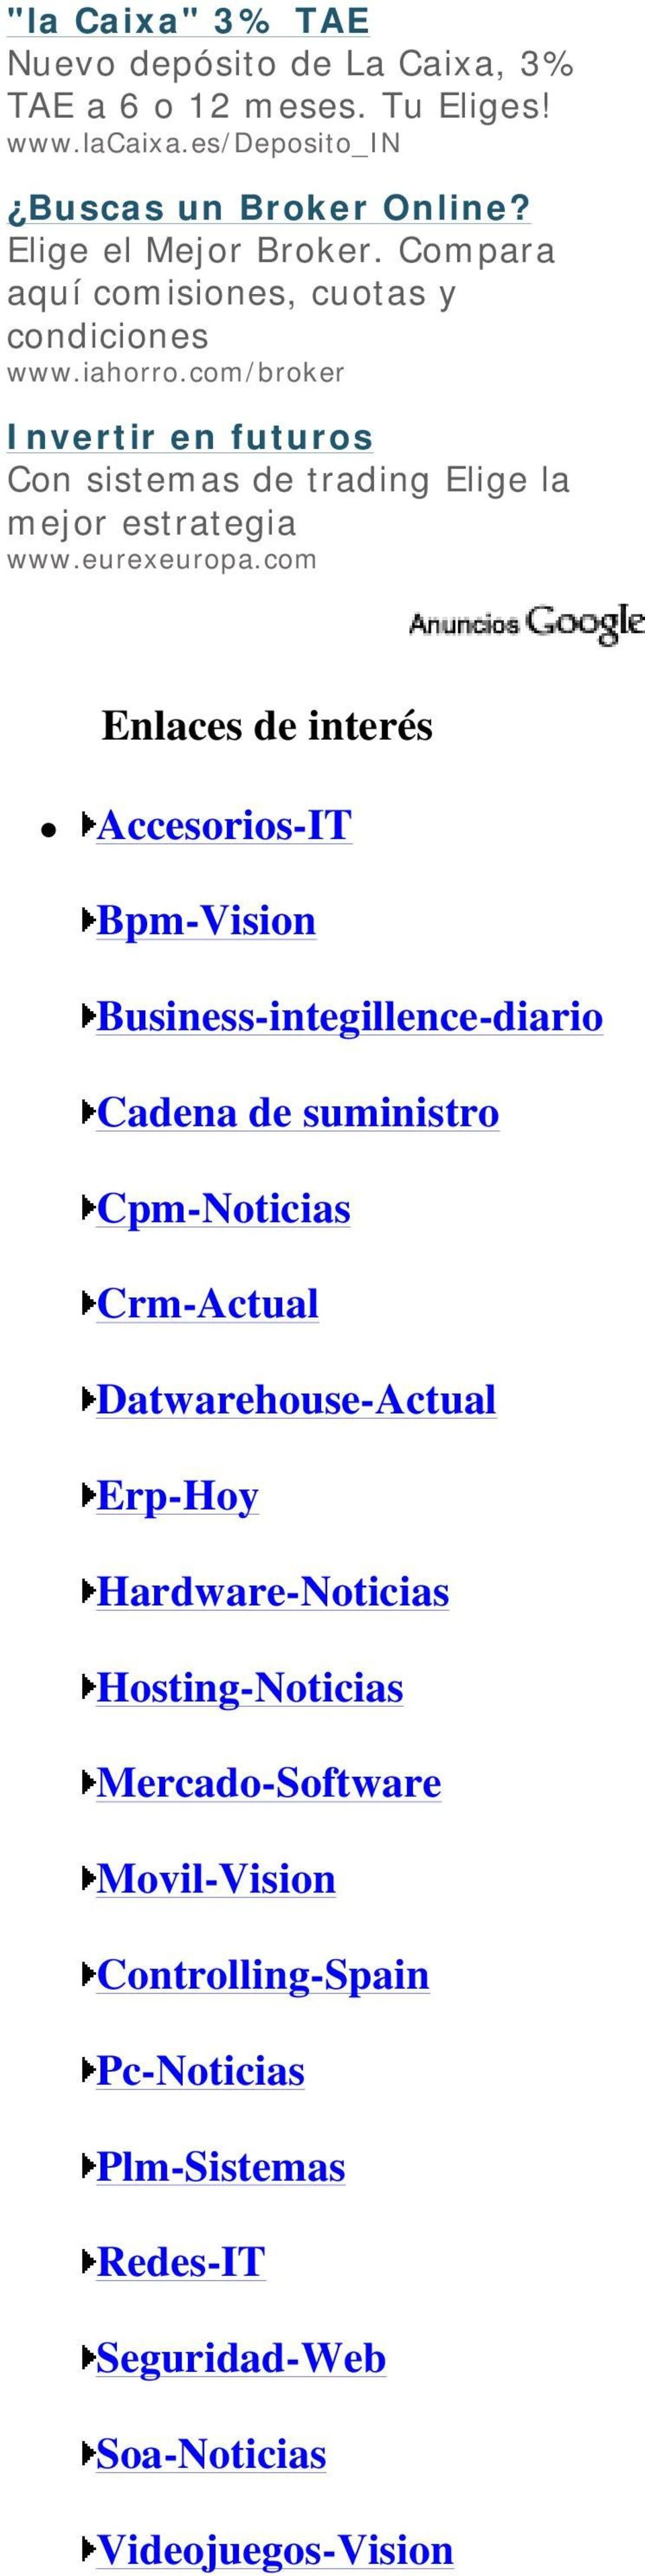 com Enlaces de interés Accesorios-IT Bpm-Vision Business-integillence-diario Cadena de suministro Cpm-Noticias Crm-Actual Datwarehouse-Actual Erp-Hoy